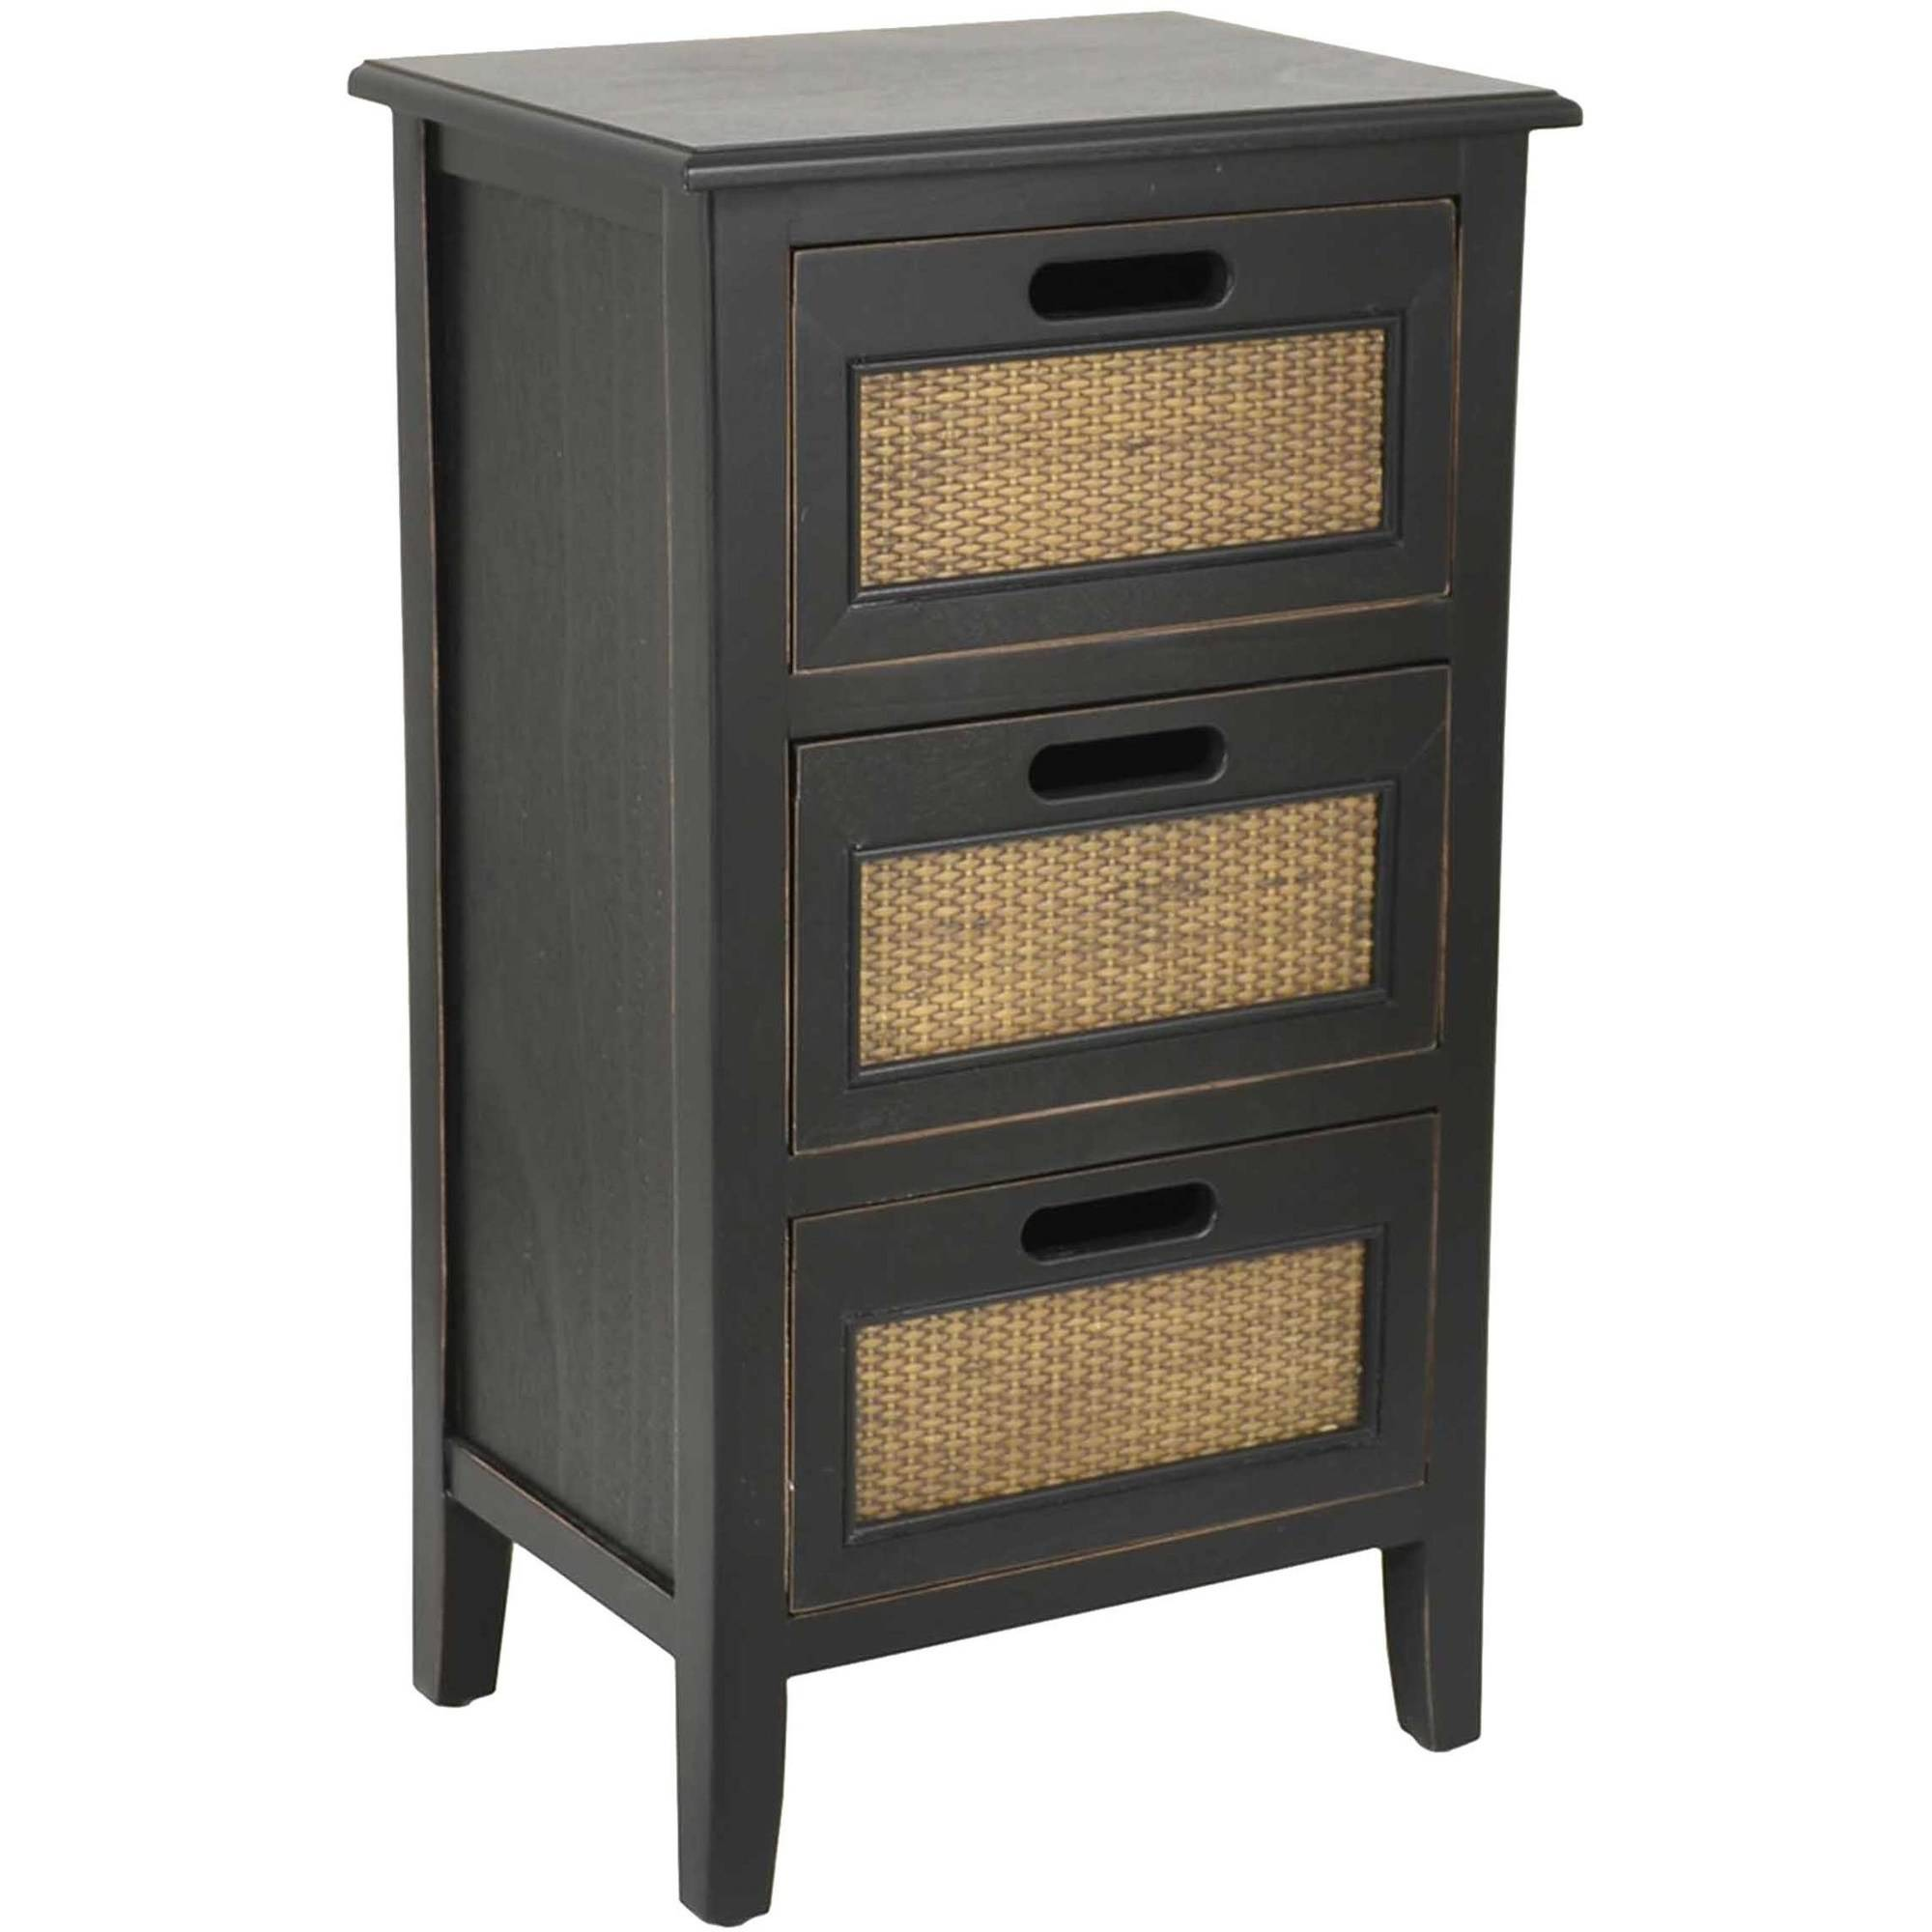 better homes and gardens wicker accent drawer table multiple colors grey farmhouse carpet termination strip moroccan mosaic low trestle contemporary bedside tables linens white